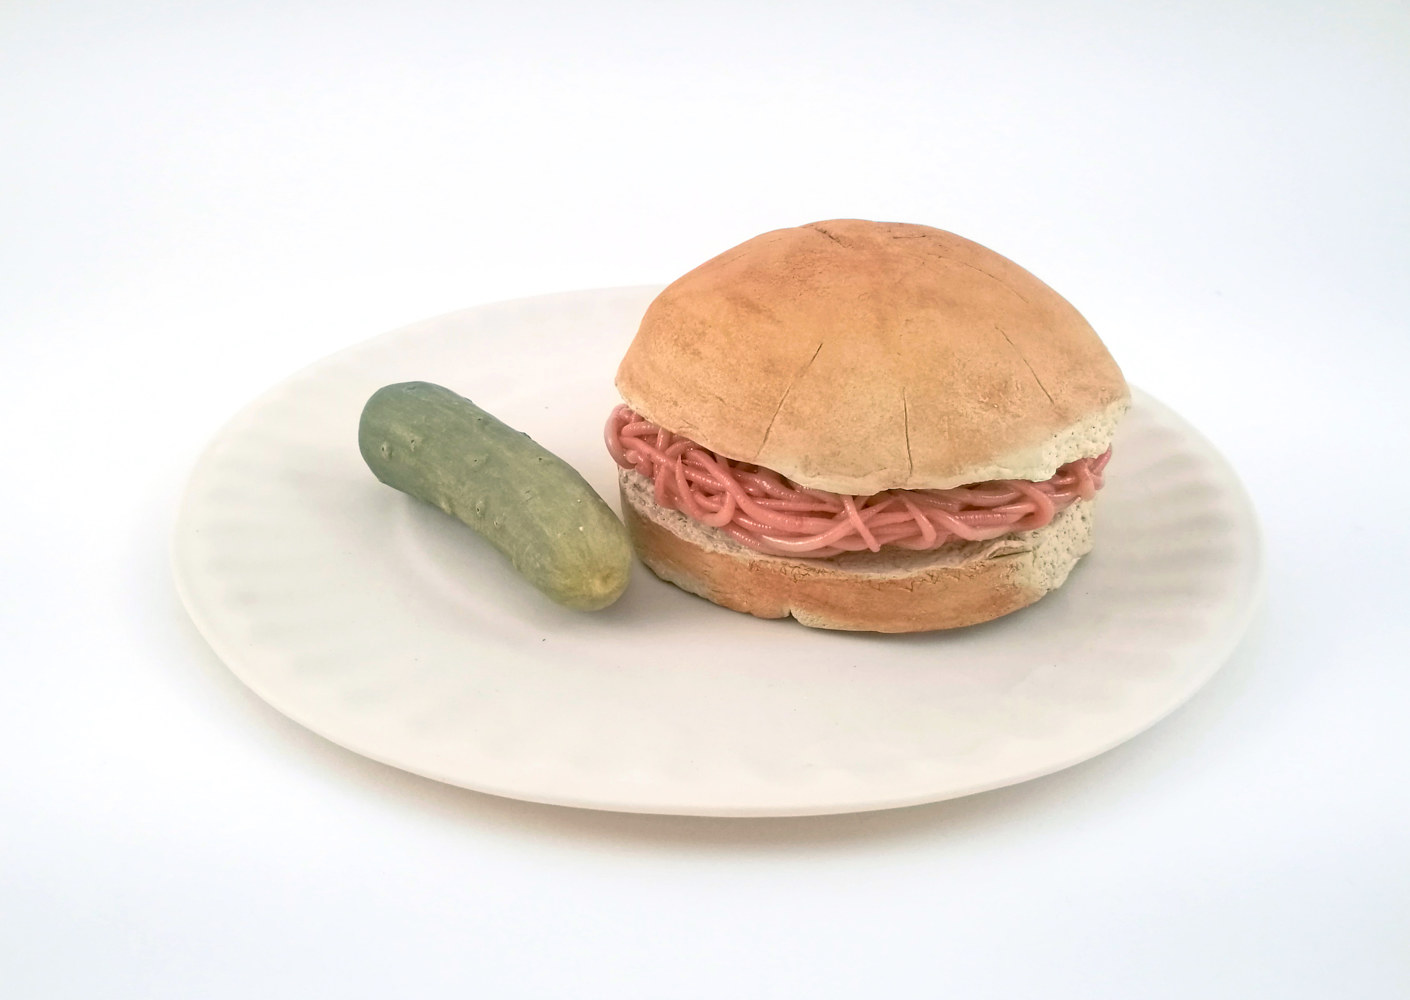 Drawing burger with pickle on a porcelain paper plate by Matthew  Dercole